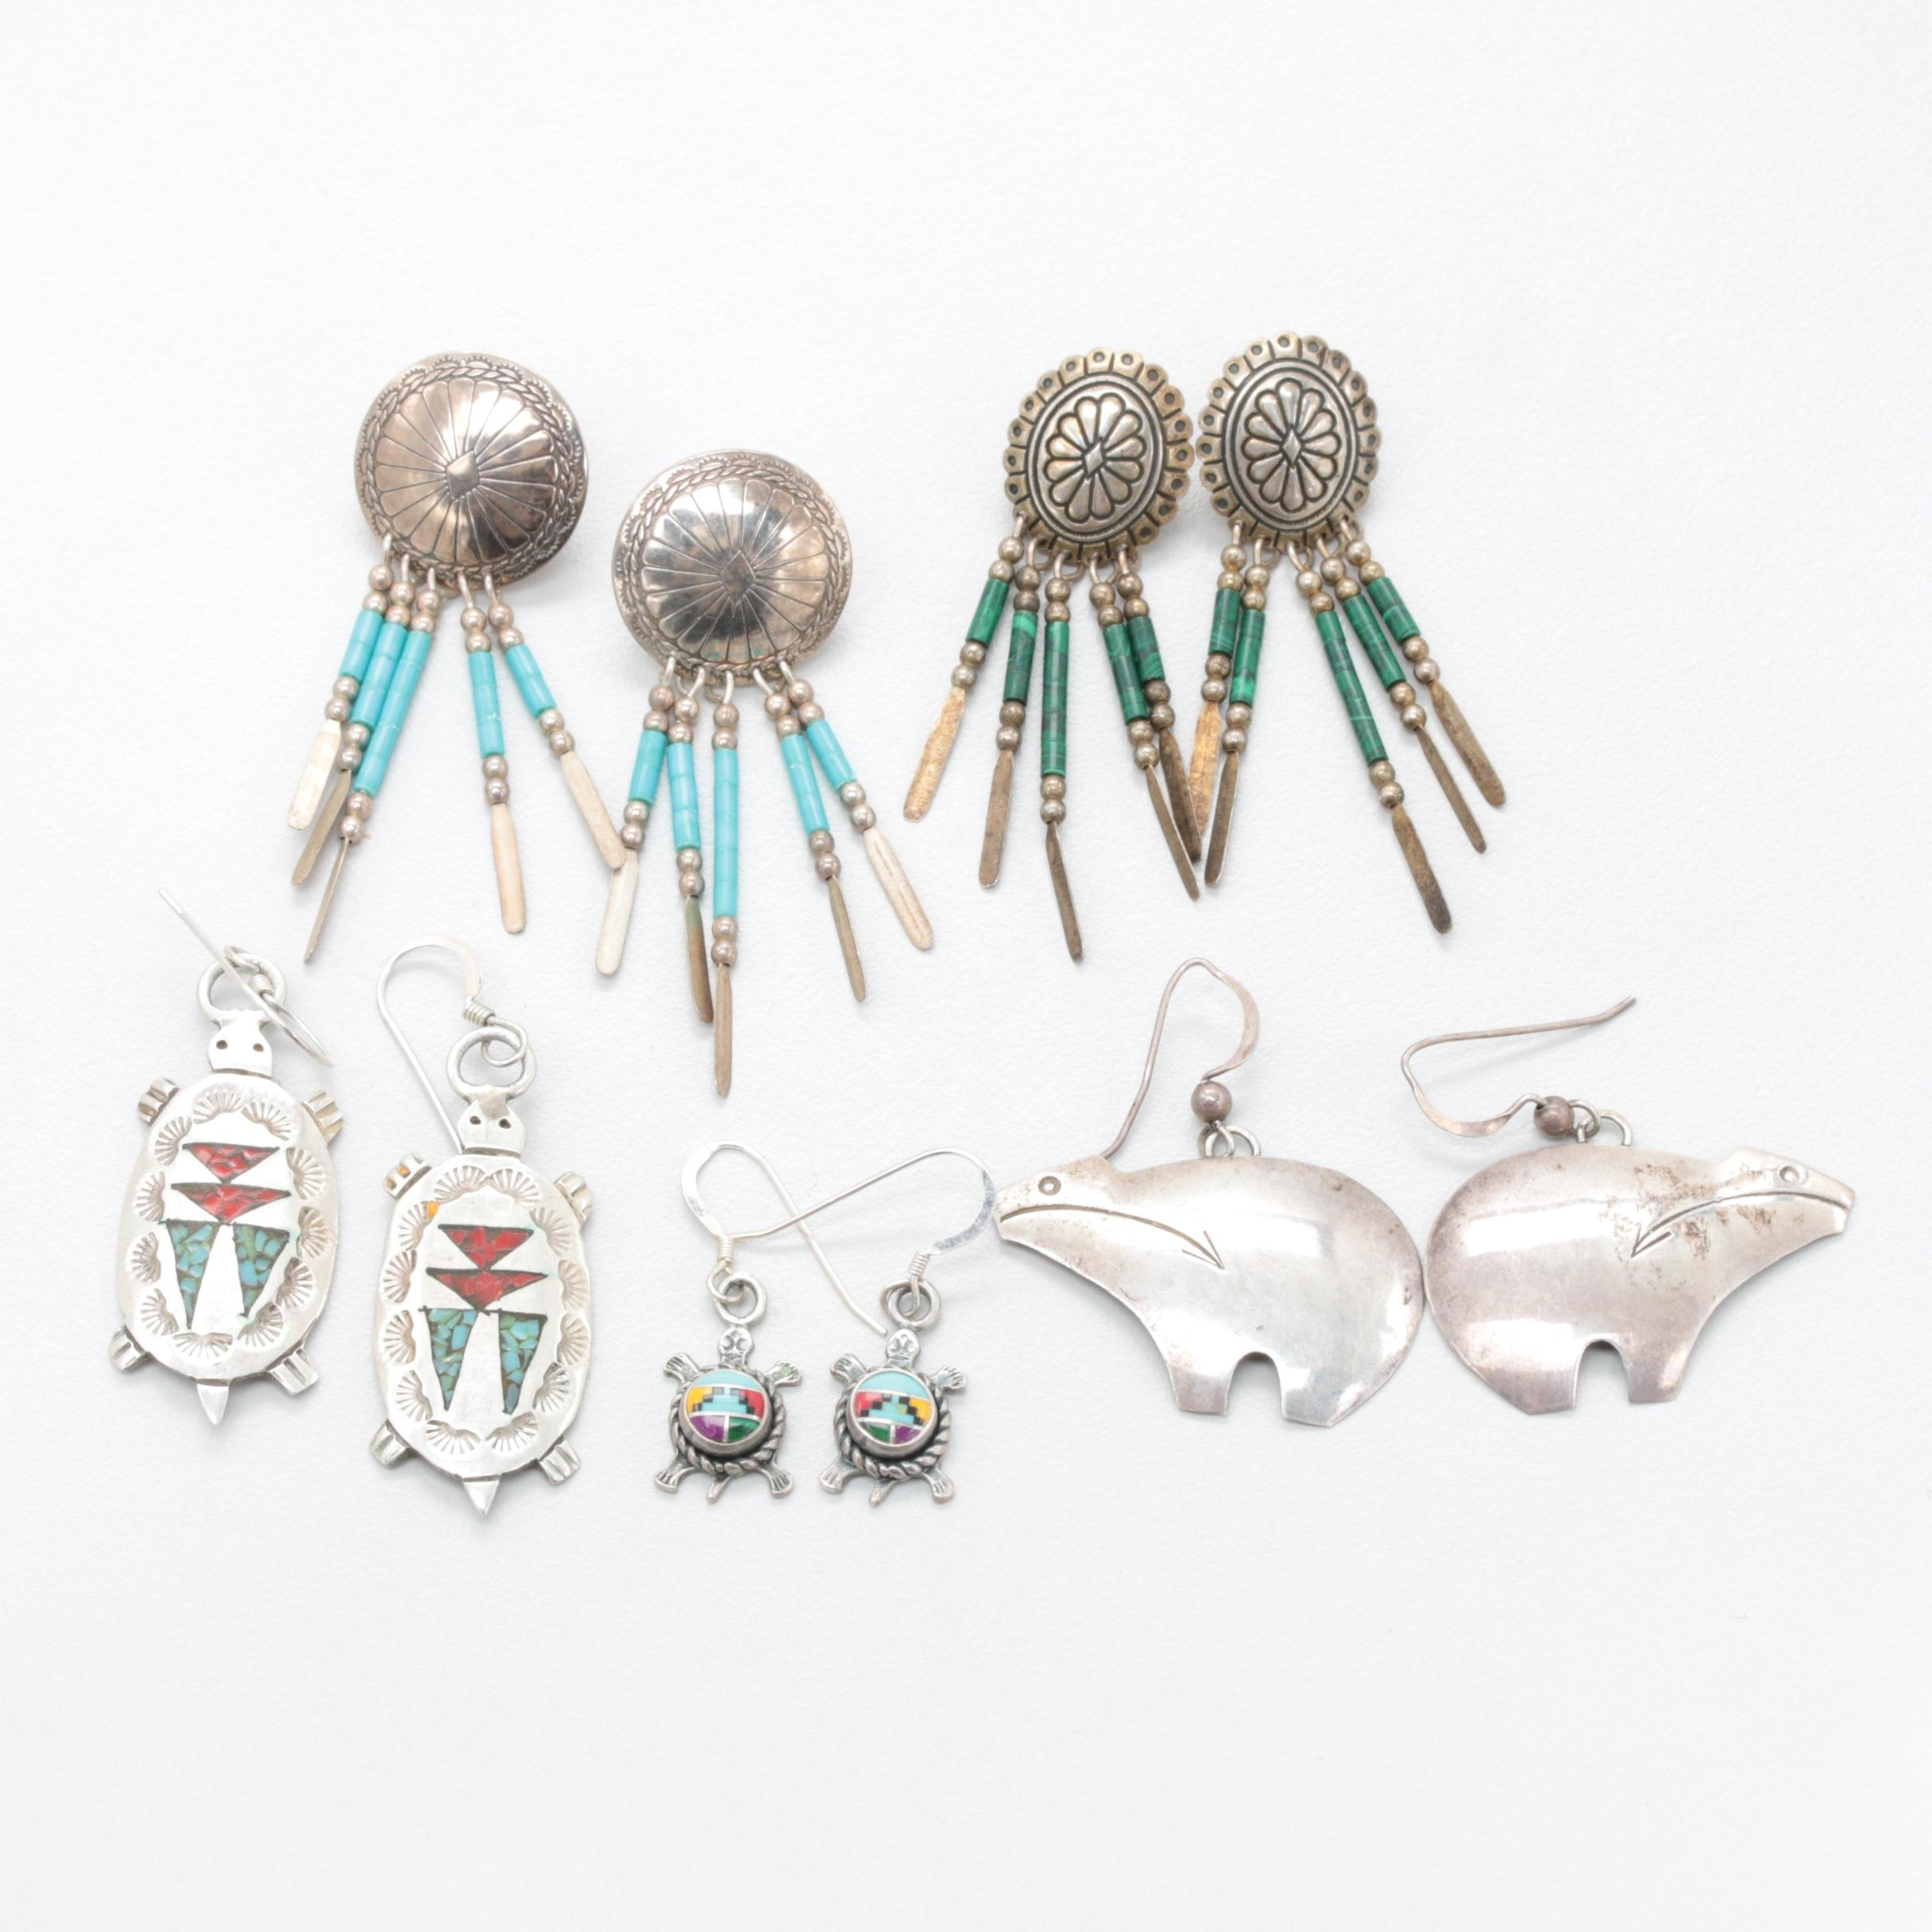 Collection of Sterling Silver Earrings Including Imitation Turquoise